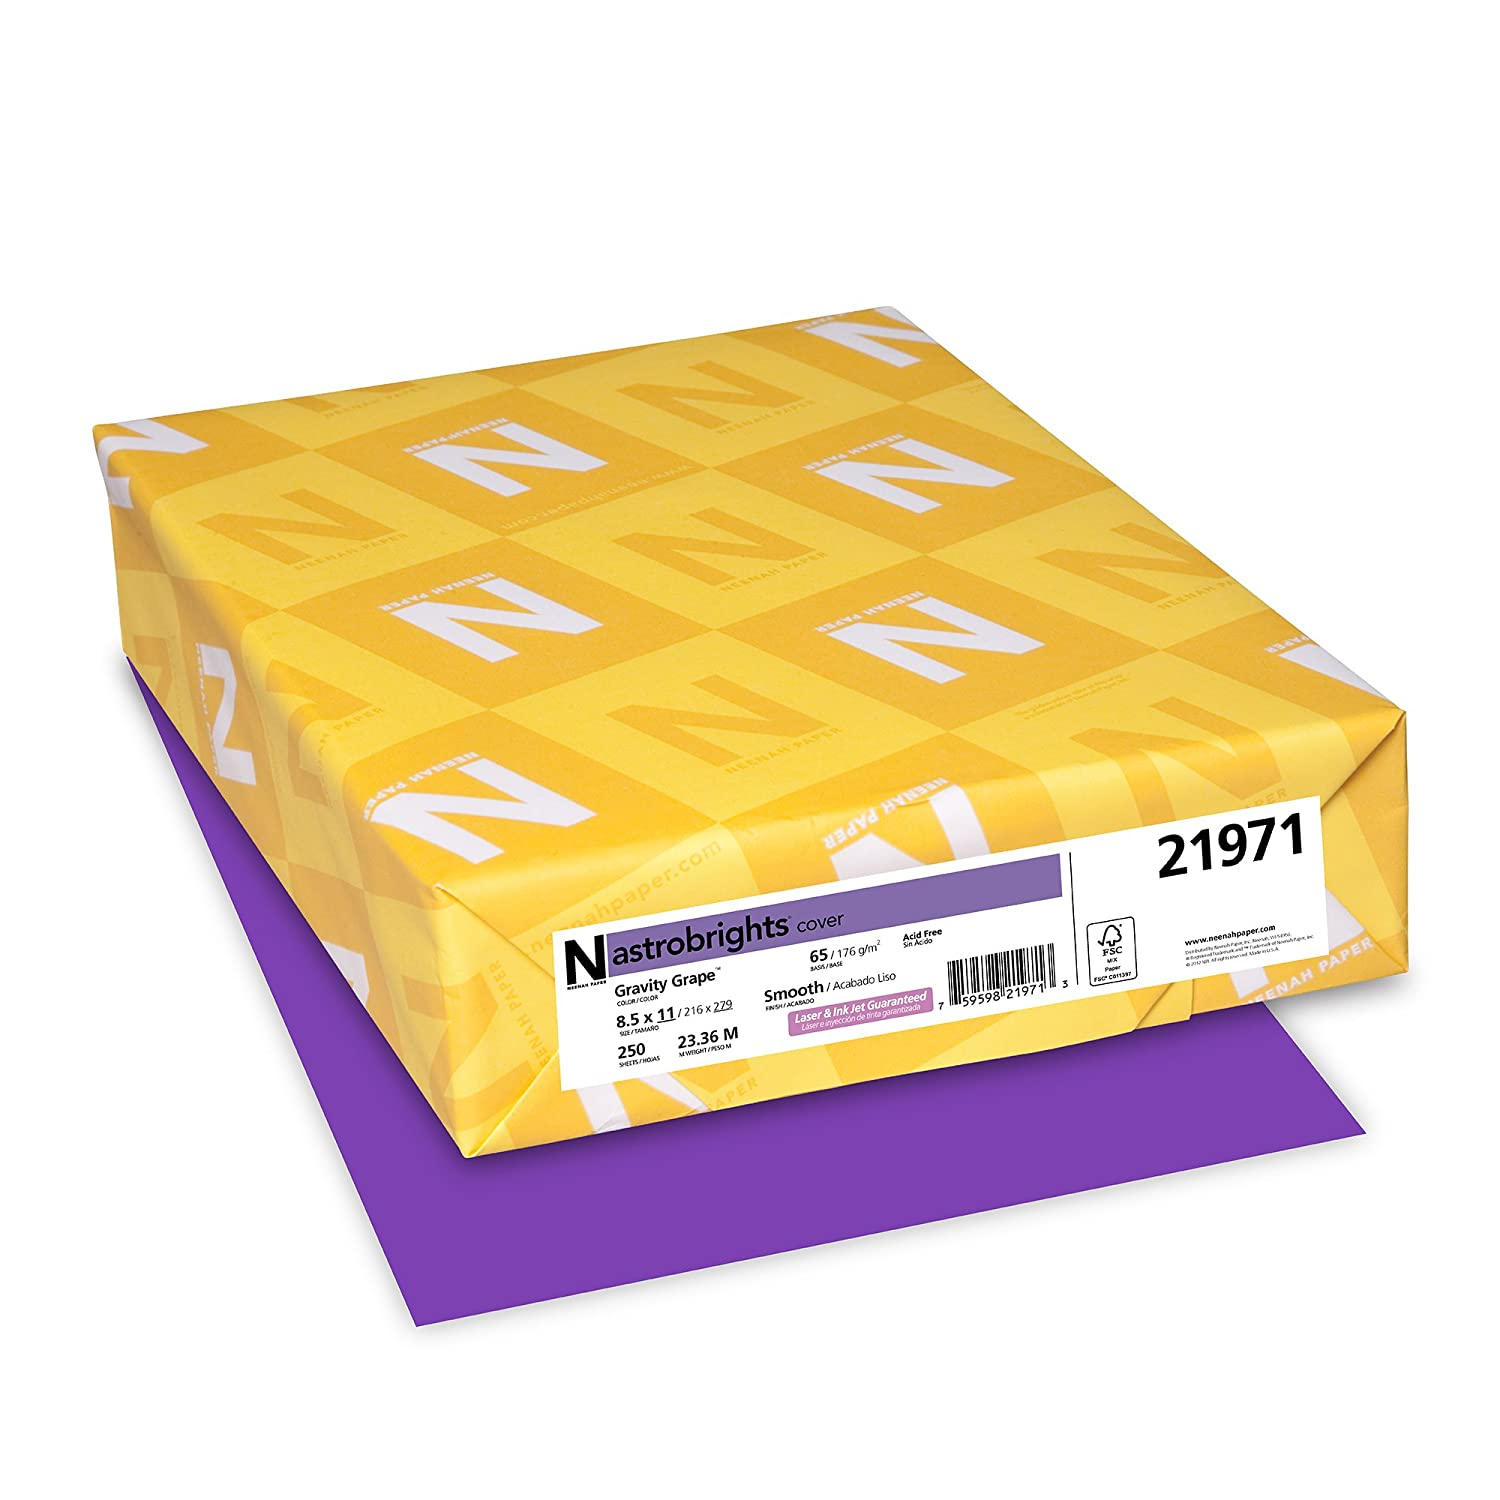 Neenah Astrobrights Color Cardstock, Letter 8.5 x 11 Inches, 65 lb. Cover, Sunburst Yellow, 250 Sheets (22791) Neenah Paper (OP)